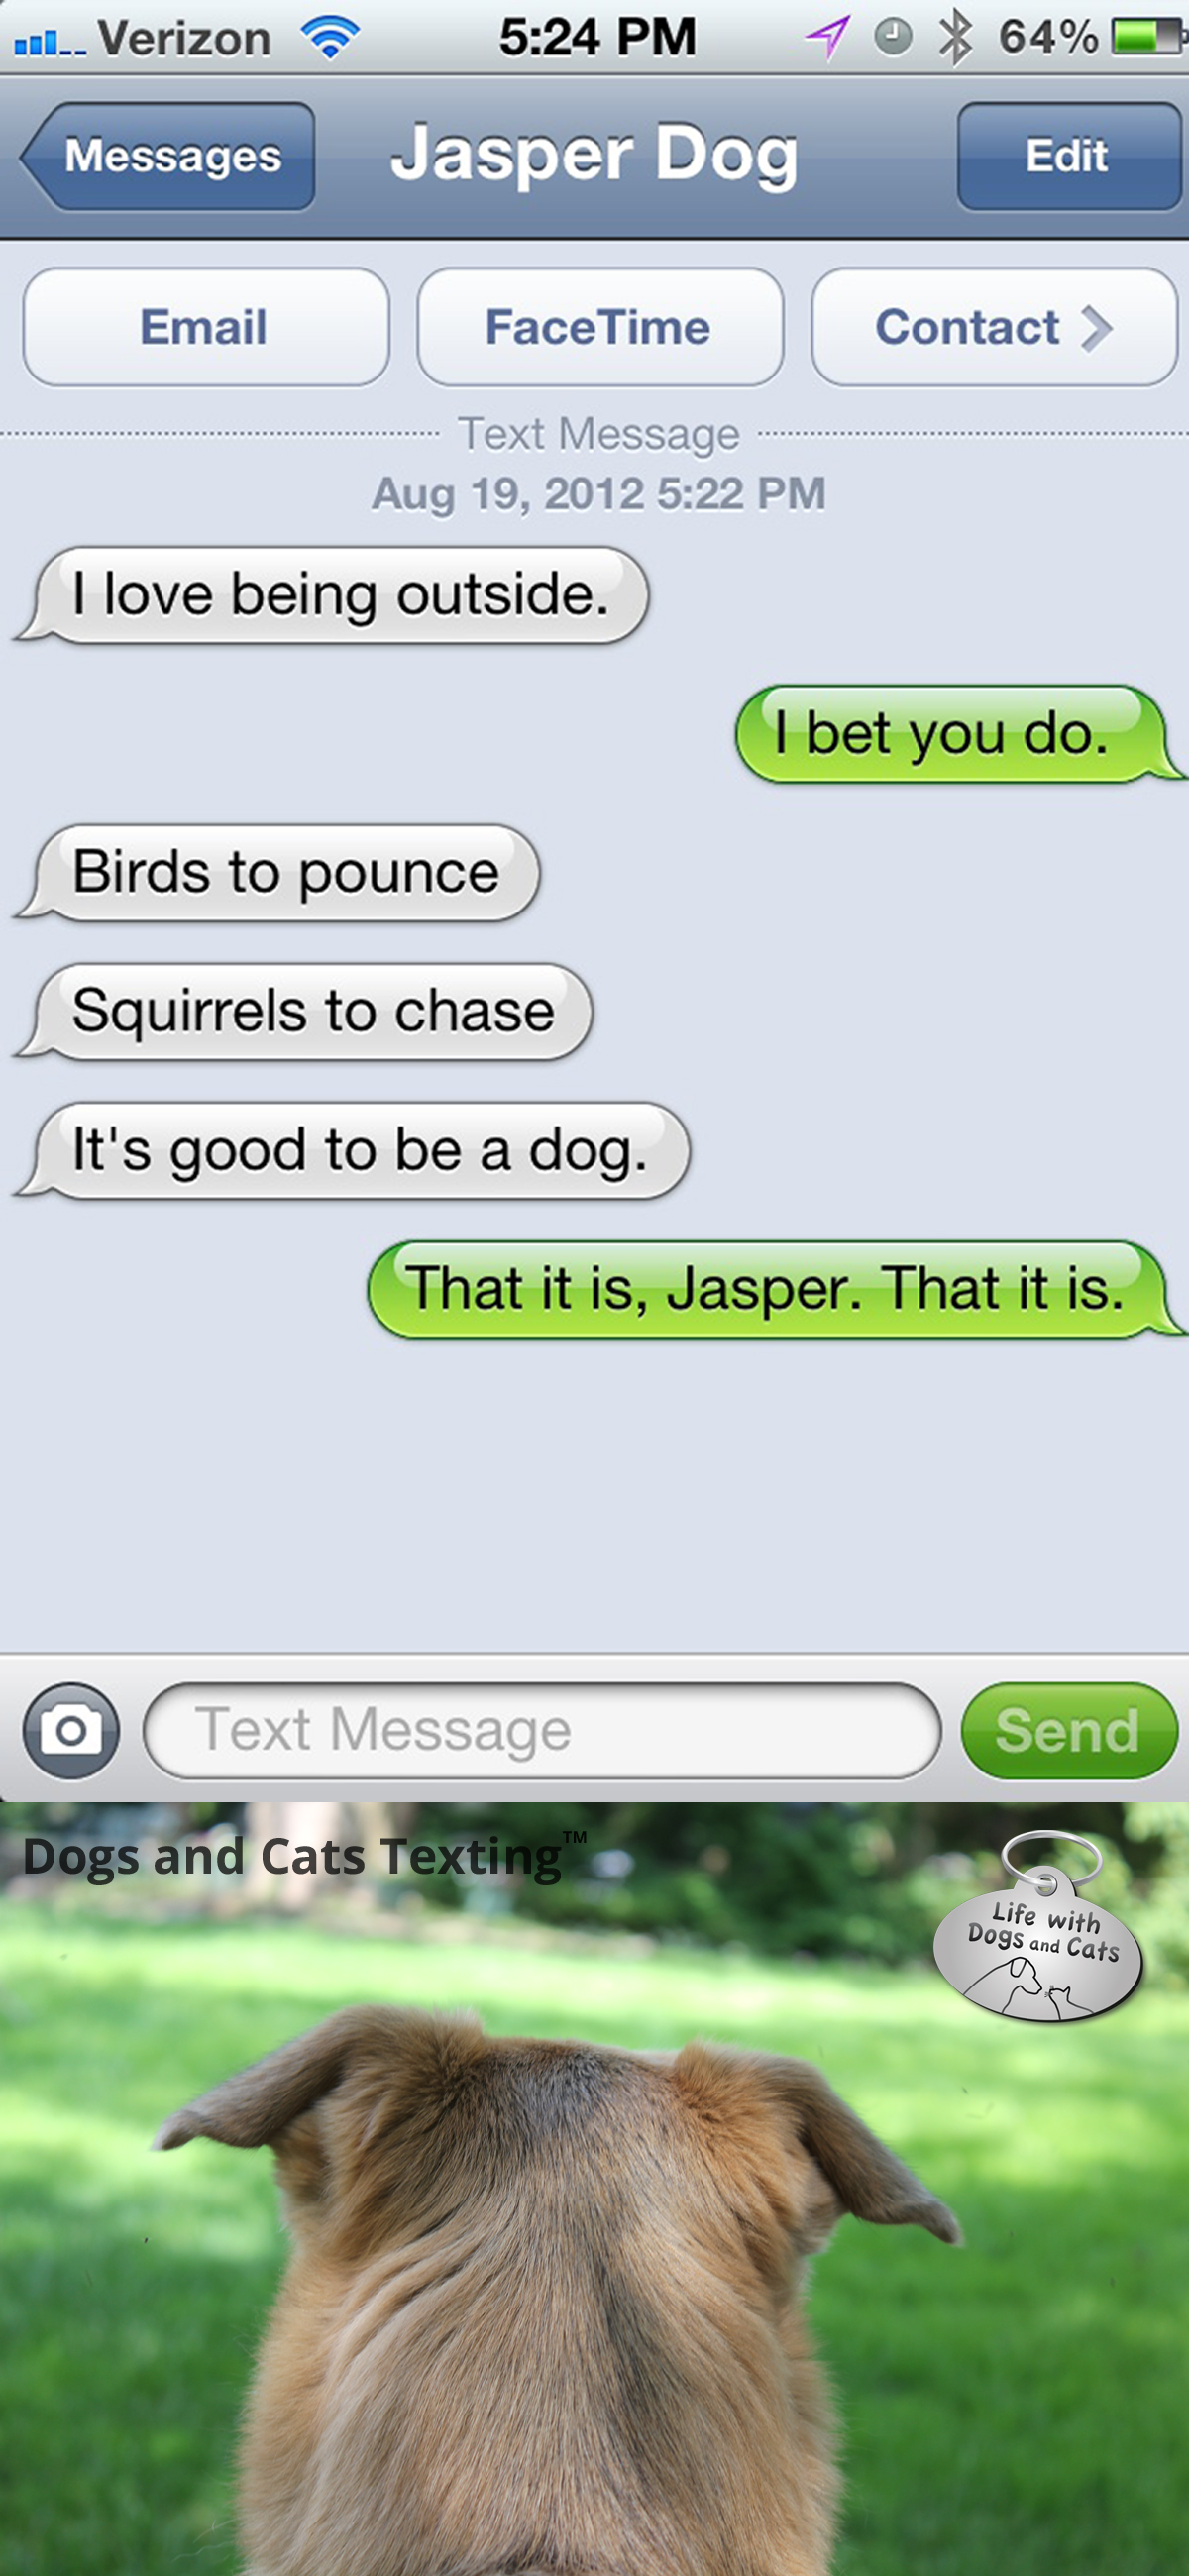 advice text from dog jasper s philosophy text from dog the ups guy